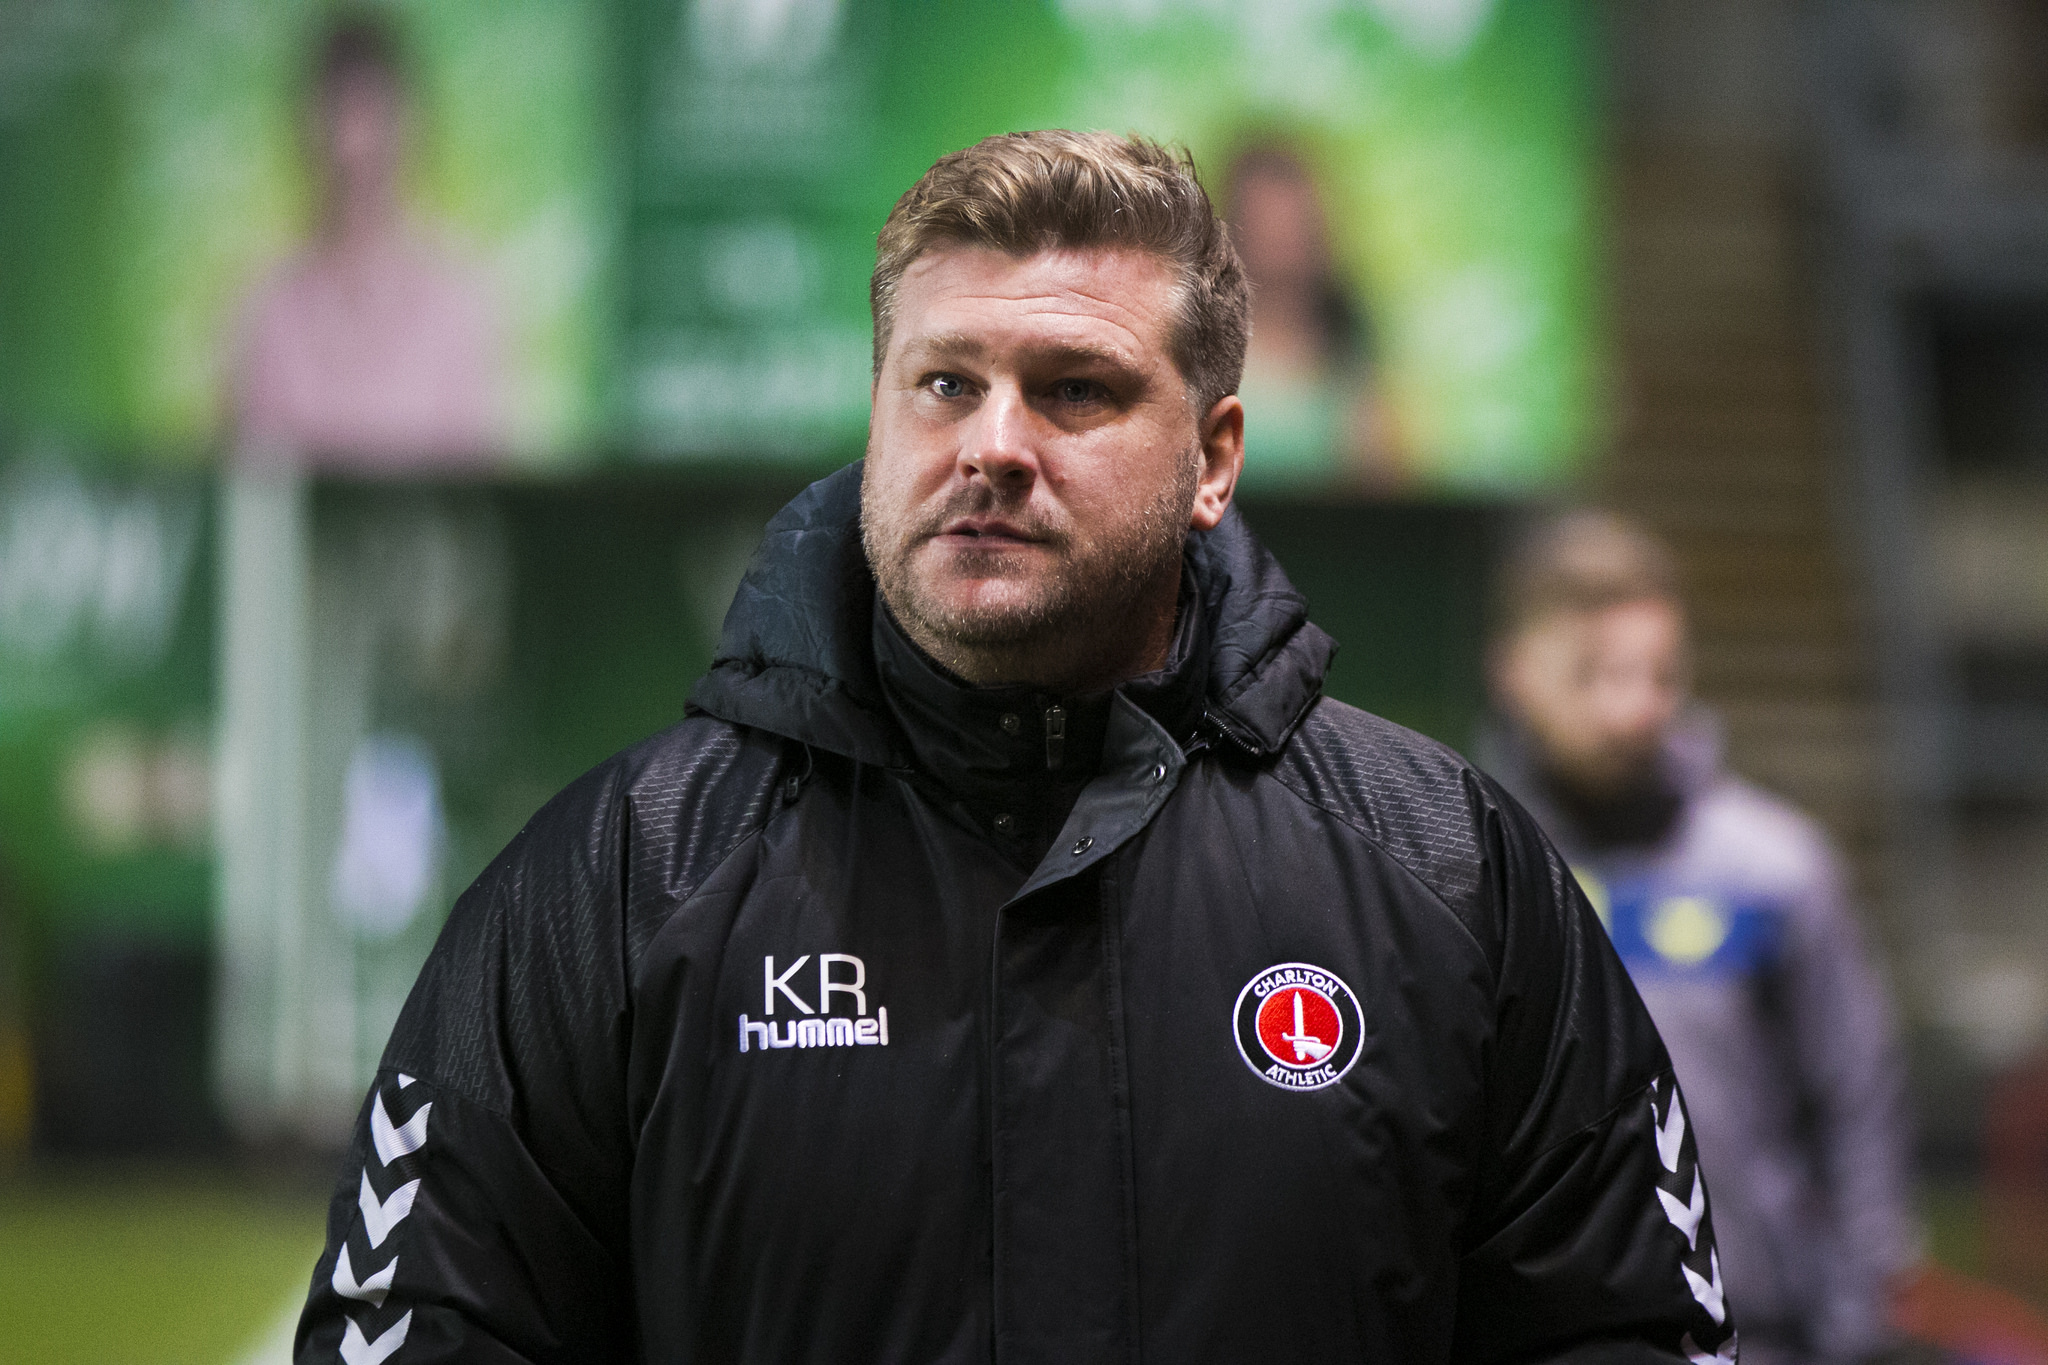 Charlton boss issues promotion warning to players after frustrating Doncaster draw